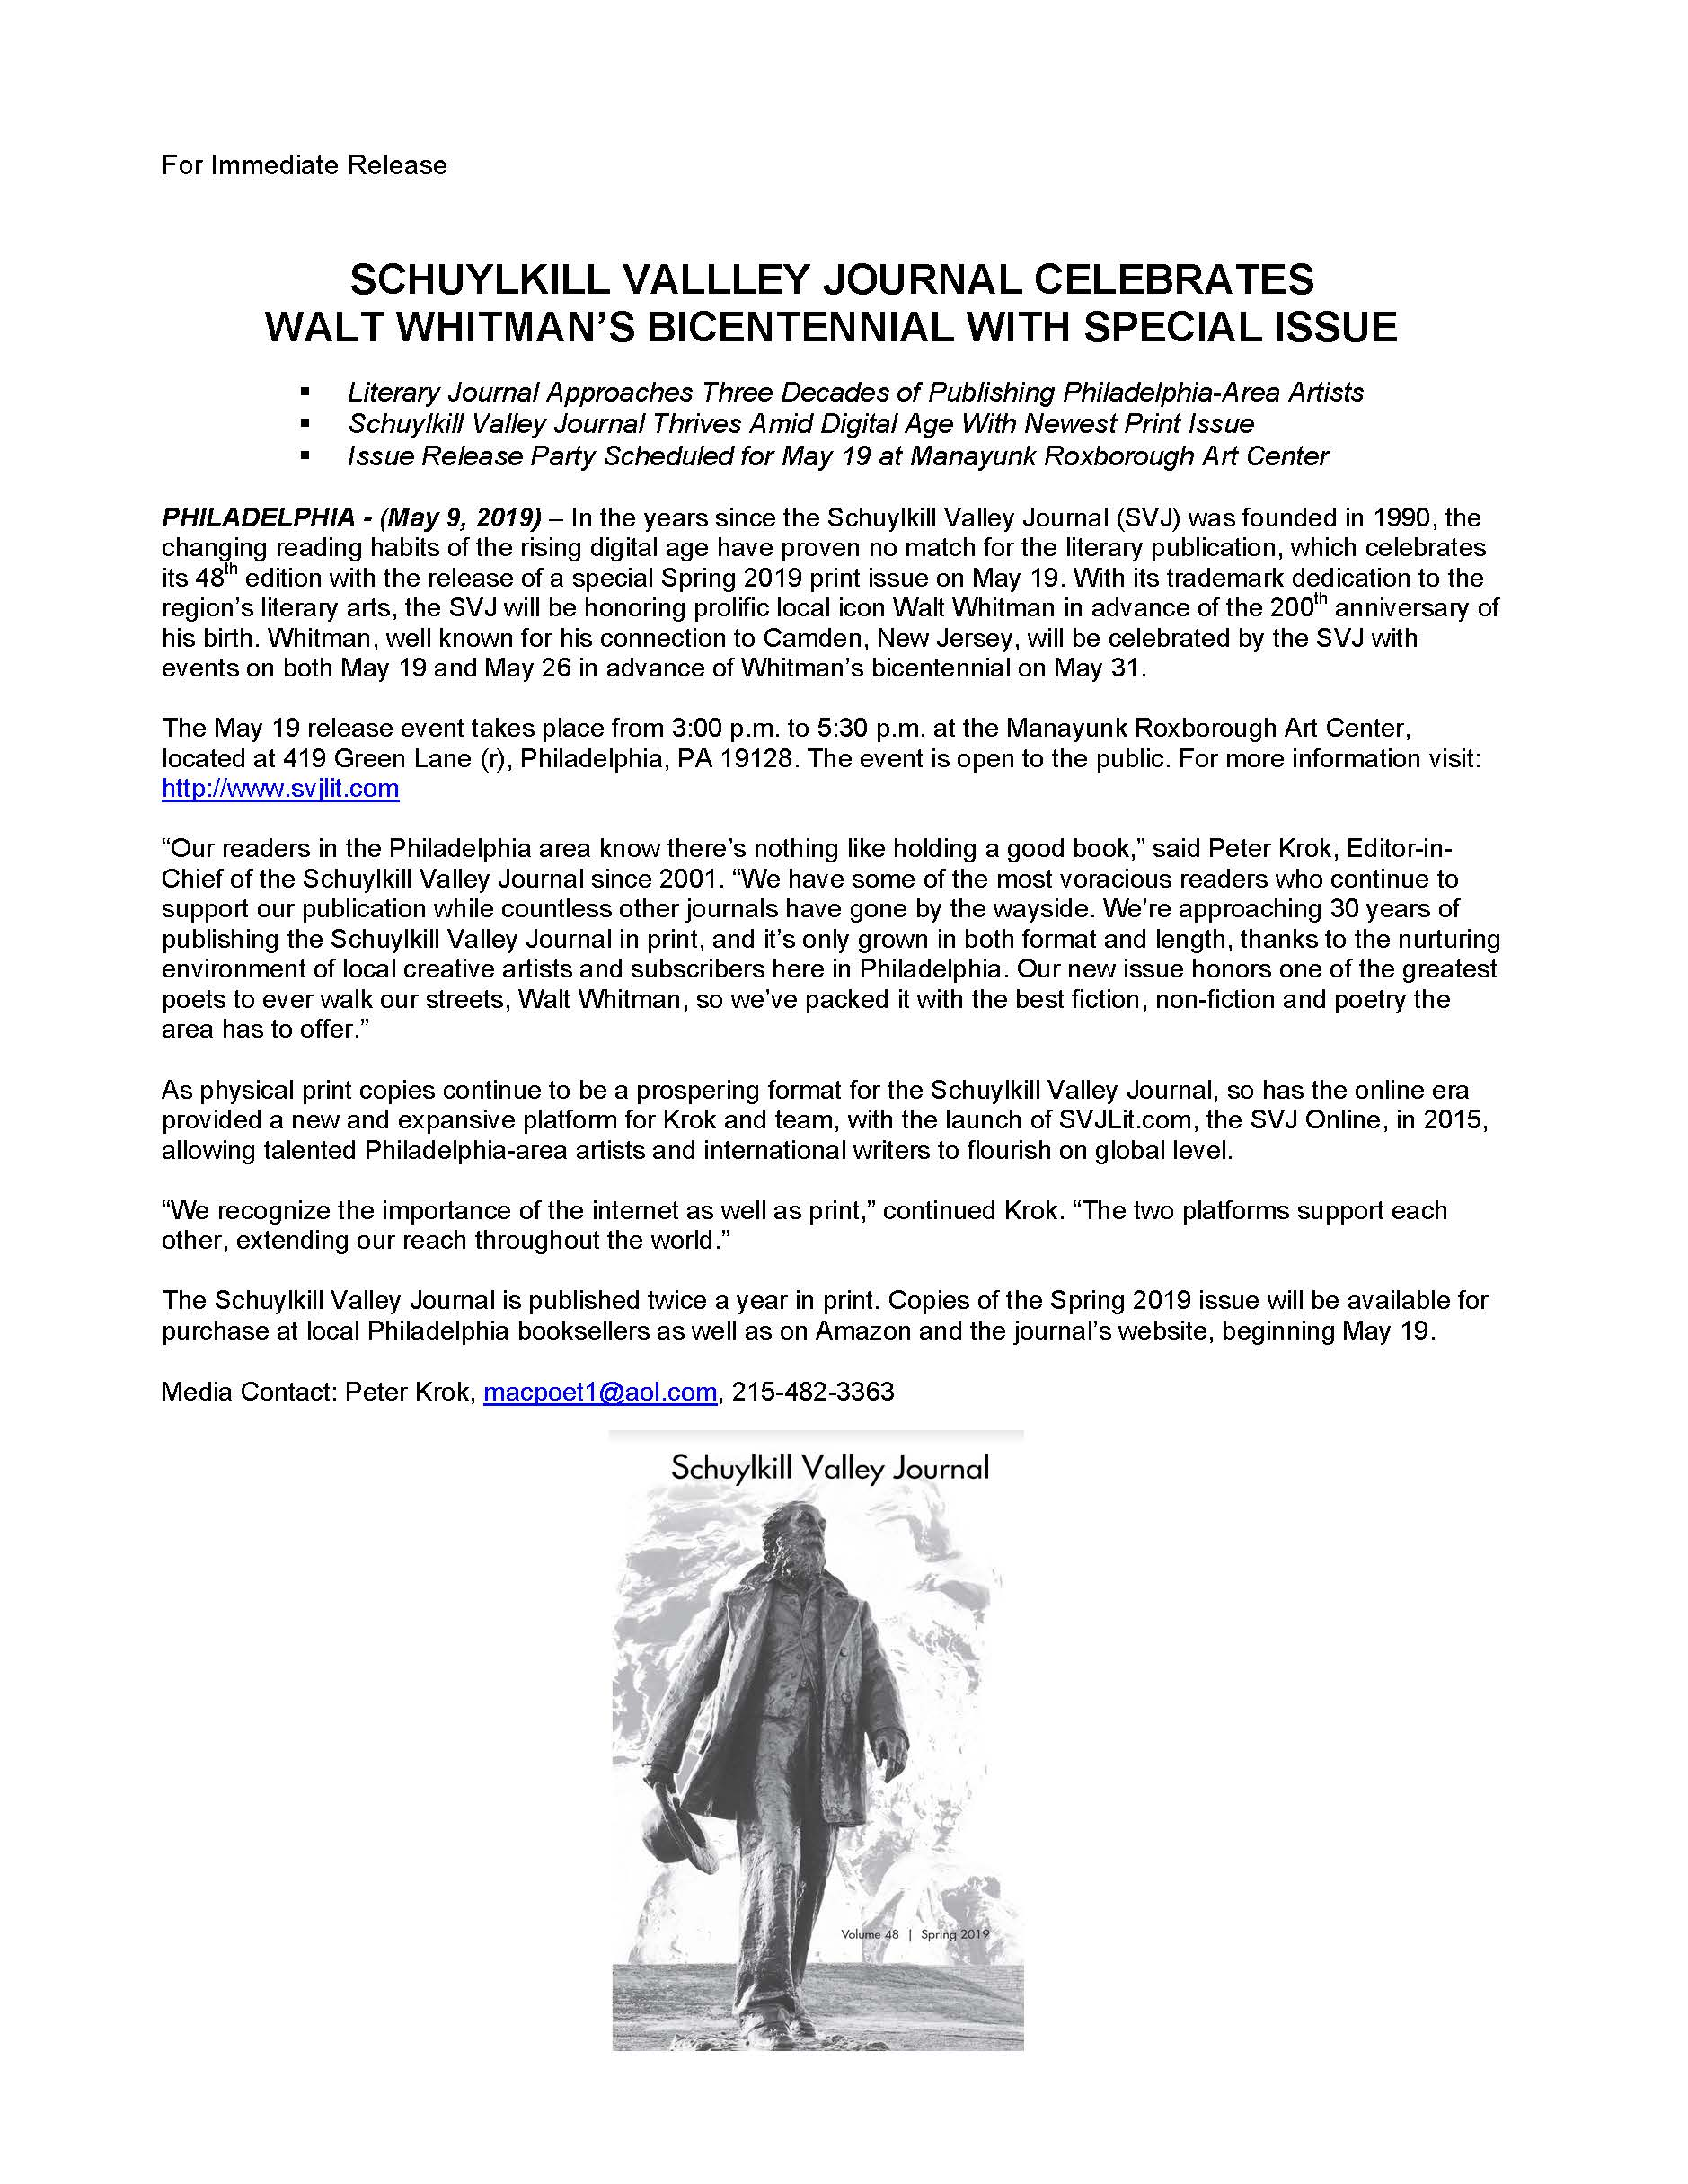 SCHUYLKILL VALLLEY JOURNAL CELEBRATES WALT WHITMANS BICENTENNIAL WITH SPECIAL ISSUE.jpg